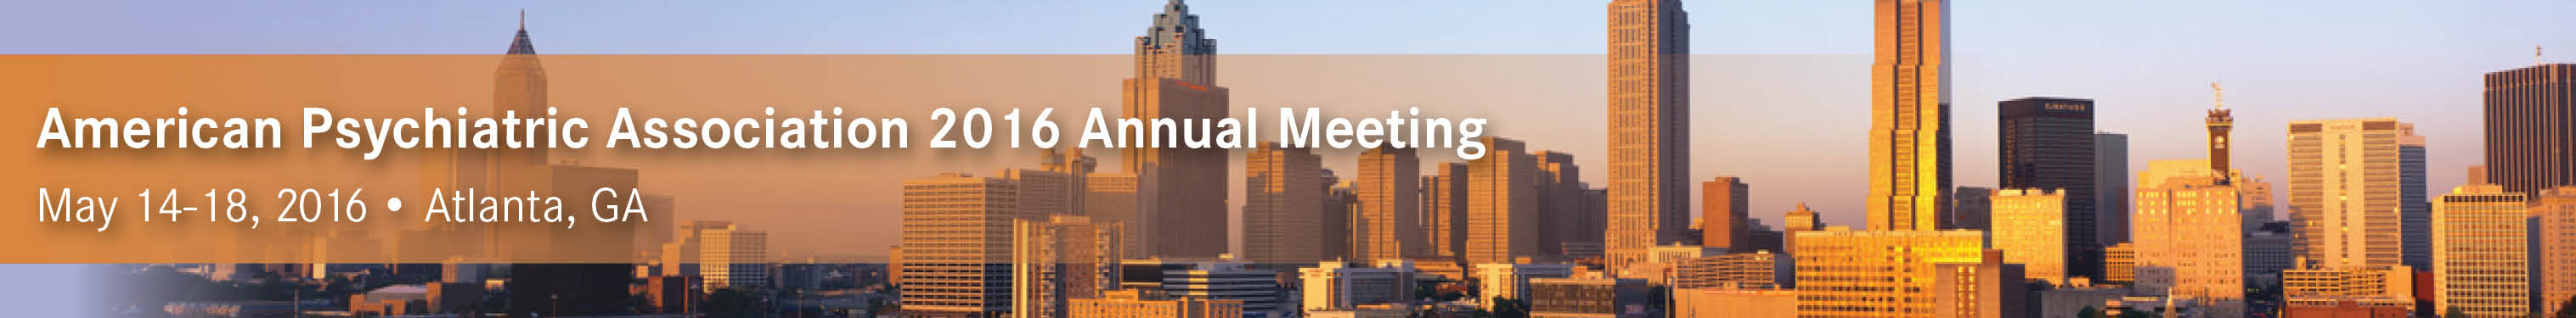 American Psychiatric Association 2016 Annual Meeting